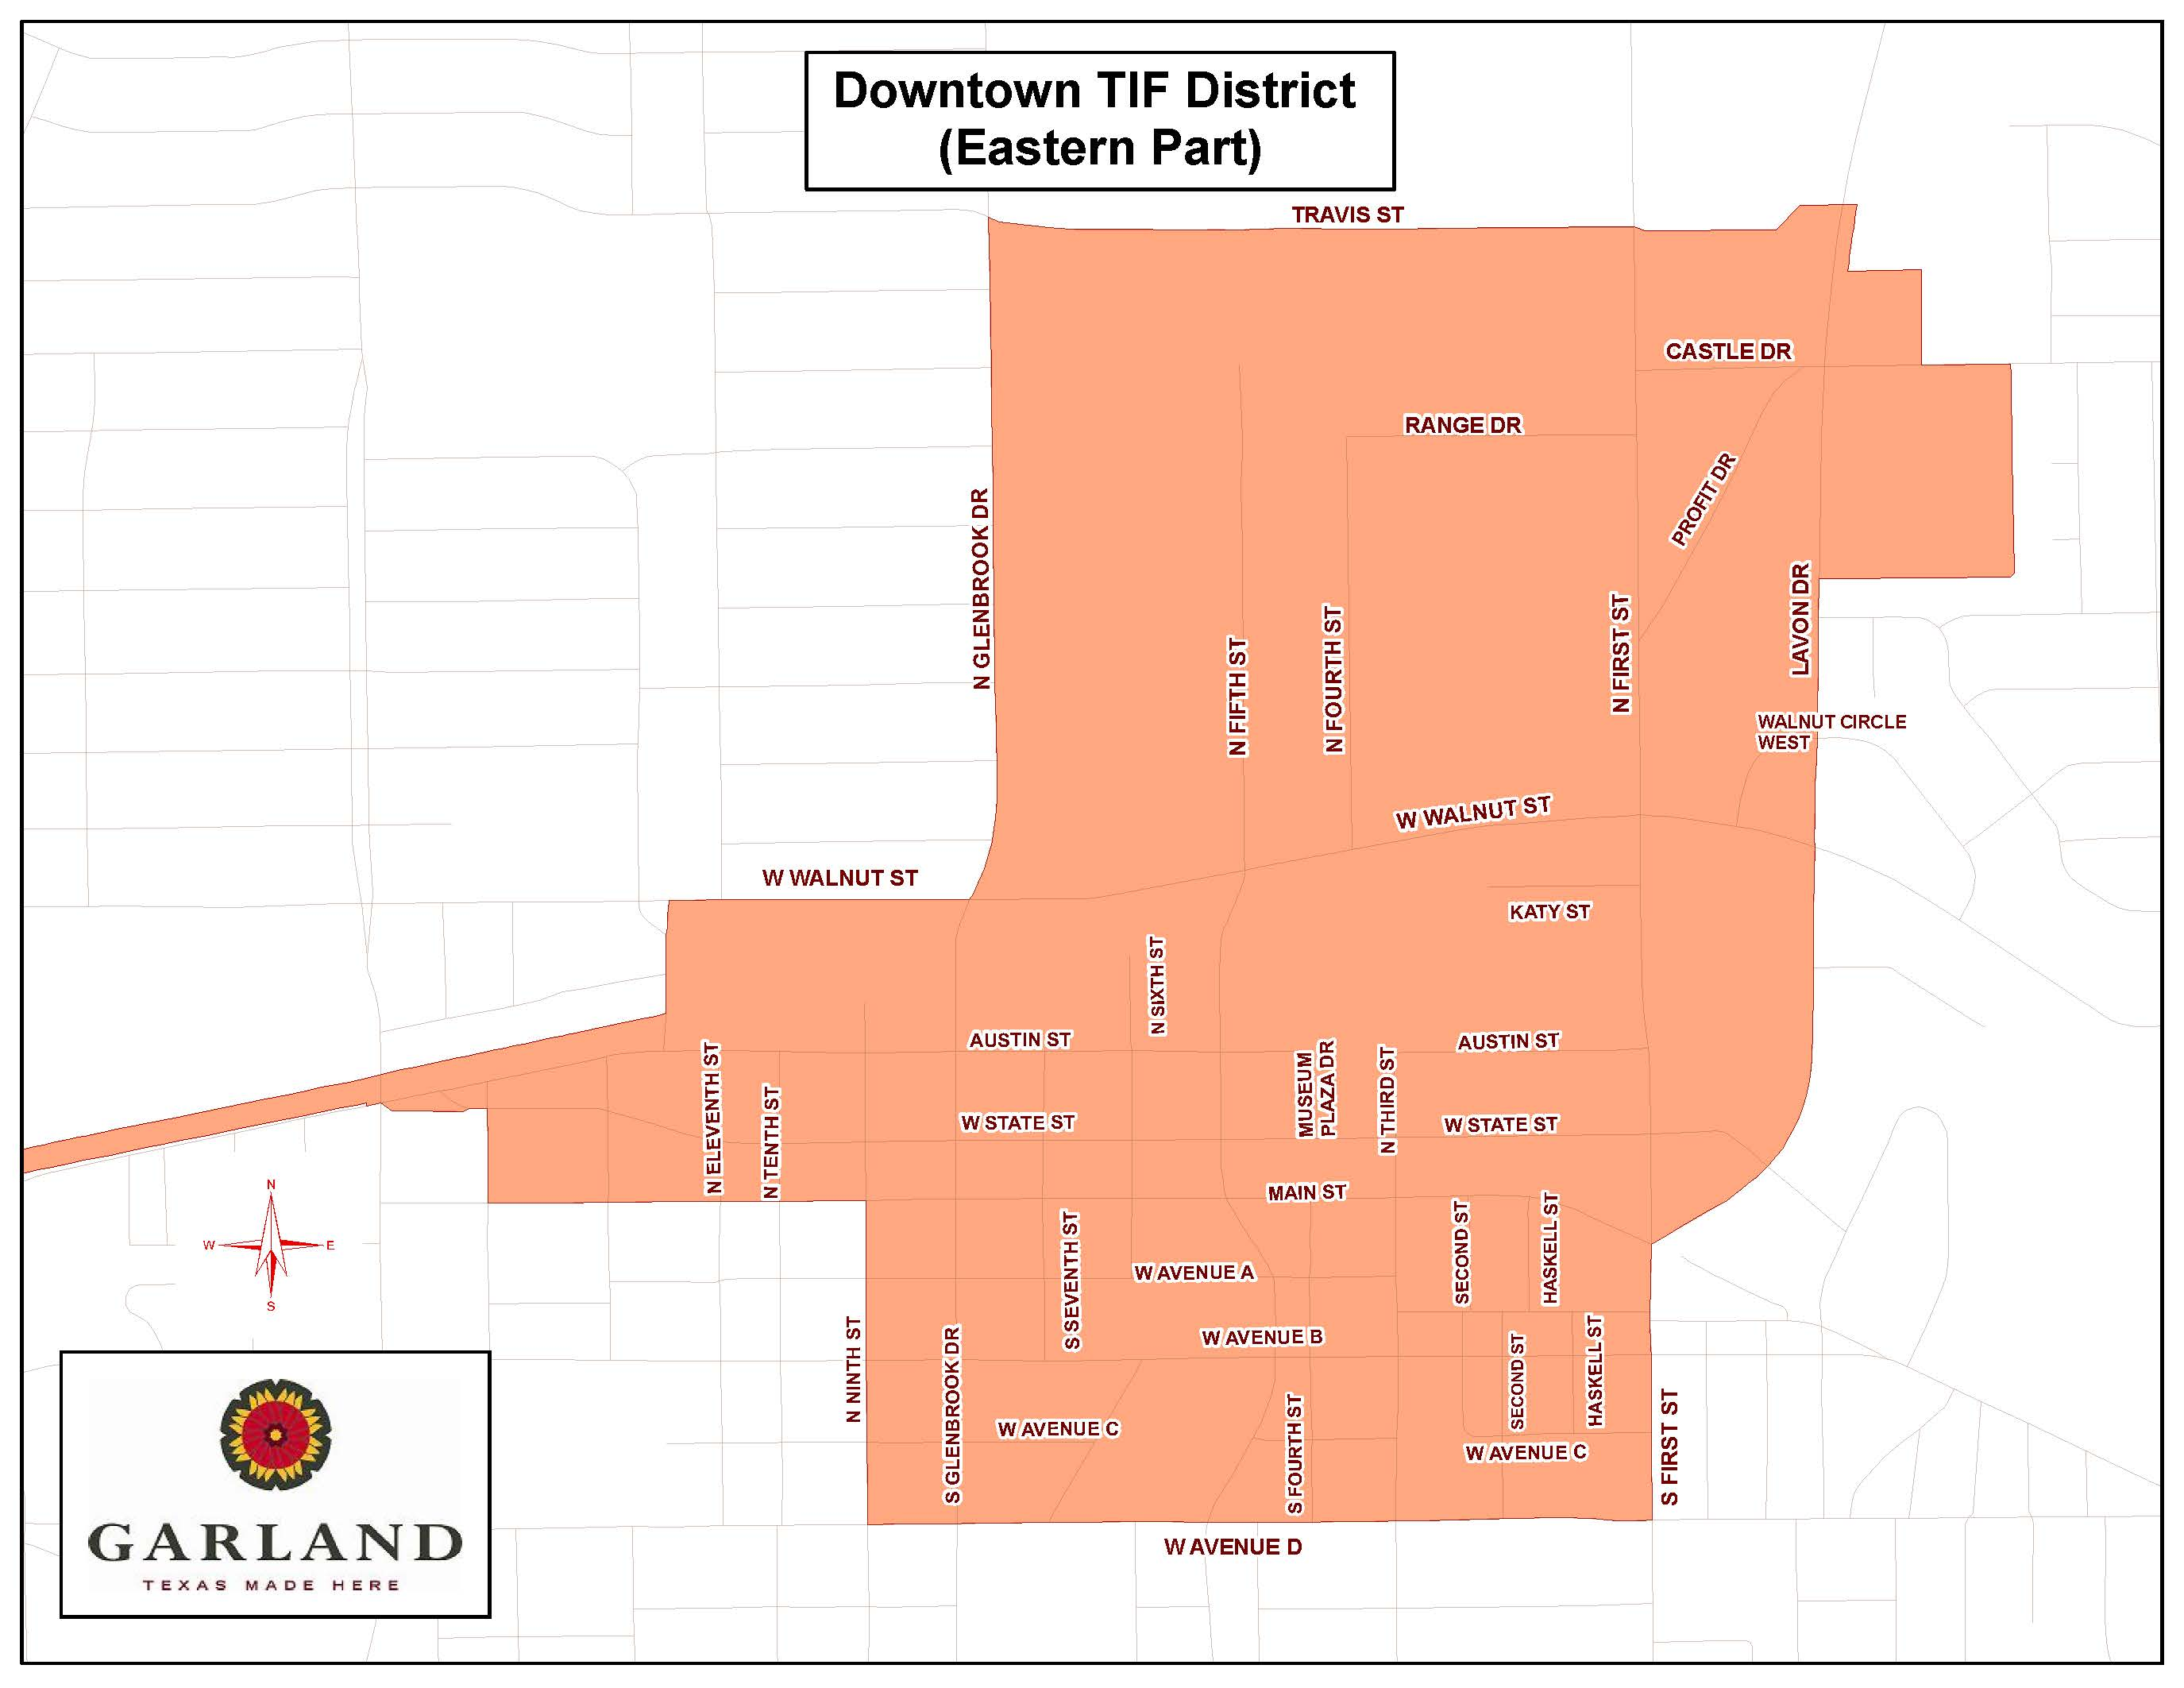 Downtown Tax Increment Financing District - Eastern Map (JPG)